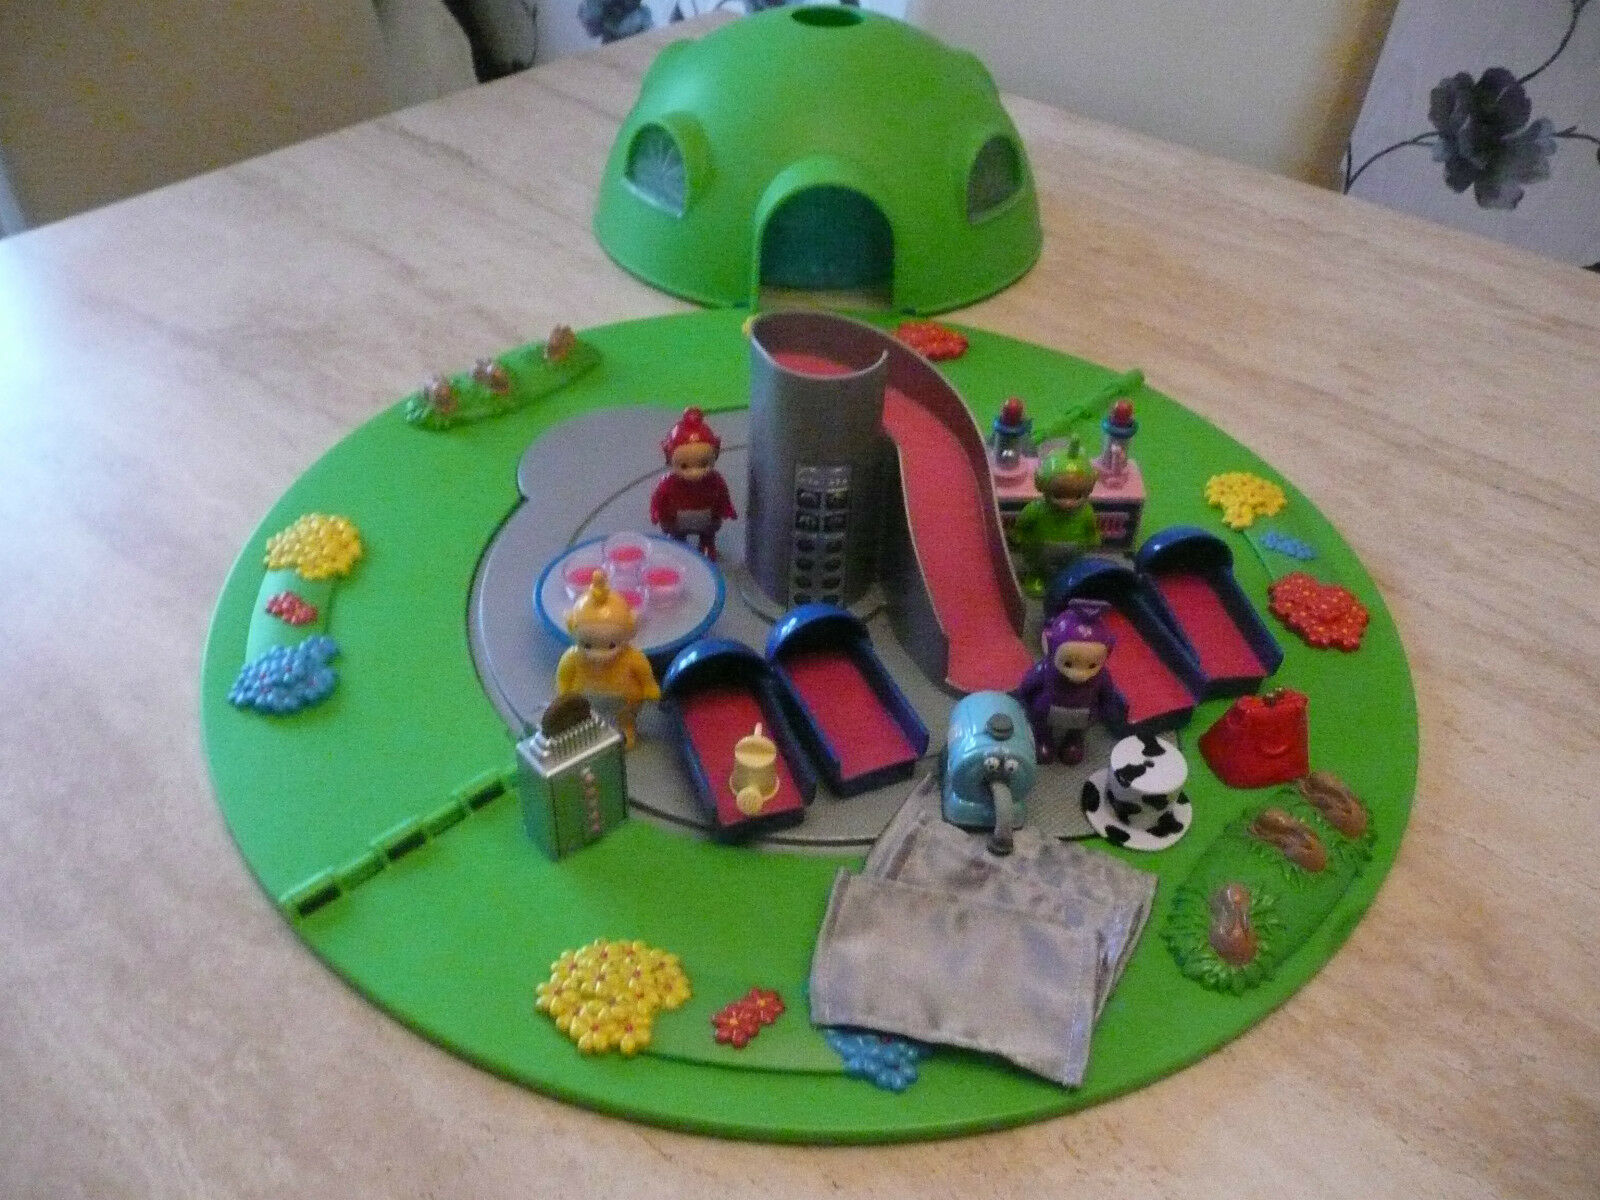 TELETUBBIES HOME HOUSE DOME PLAYSET 4 TUBBY FIGURES99% COMPLETE SET